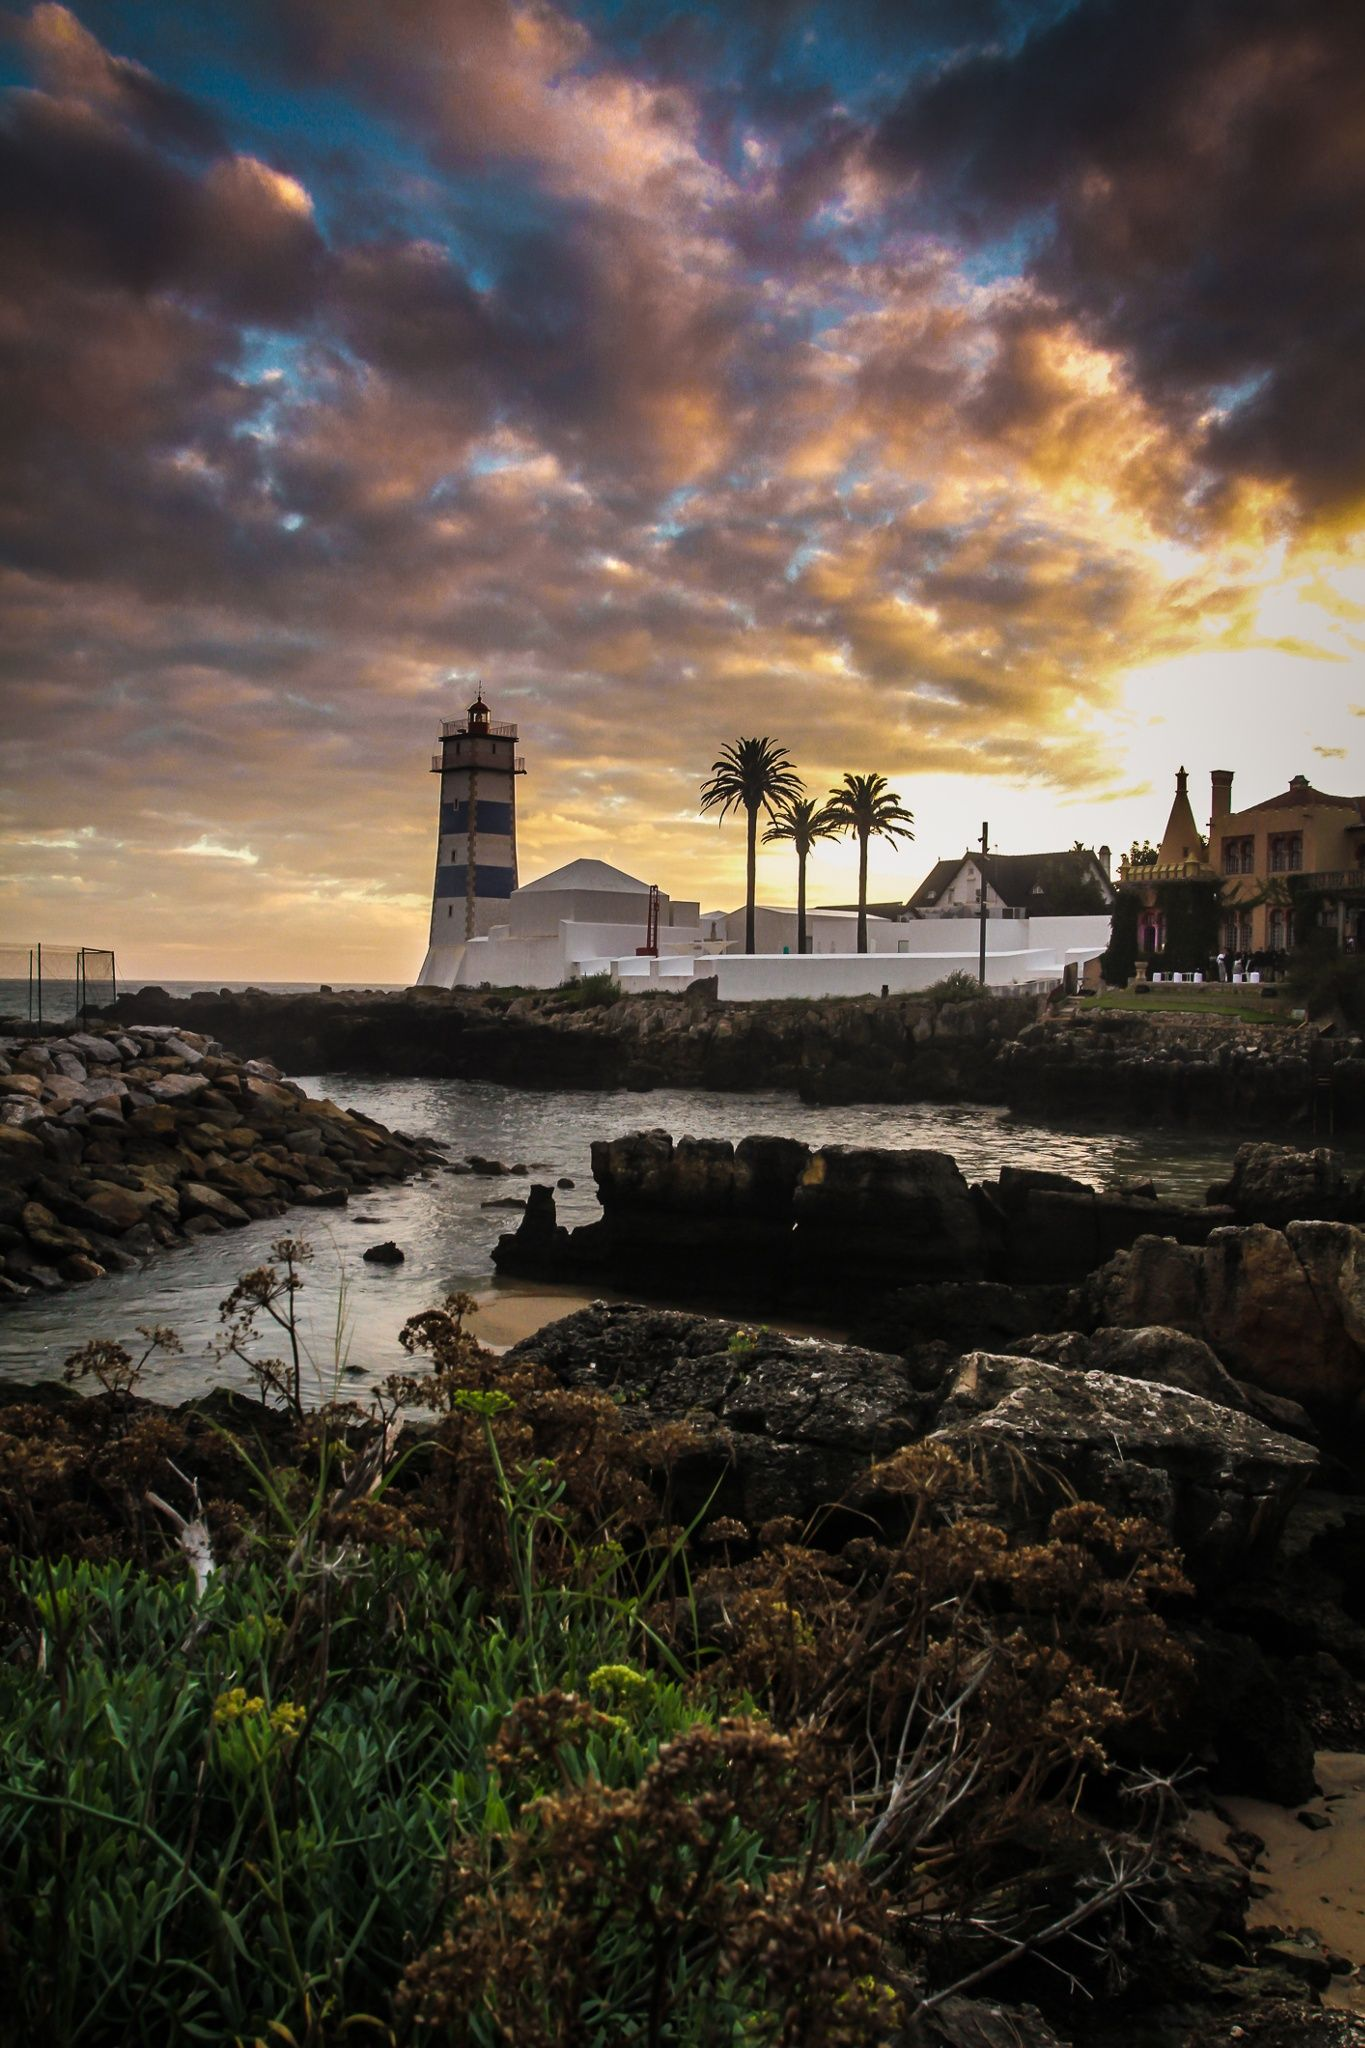 In search of the light by Joao Martinho on 500px